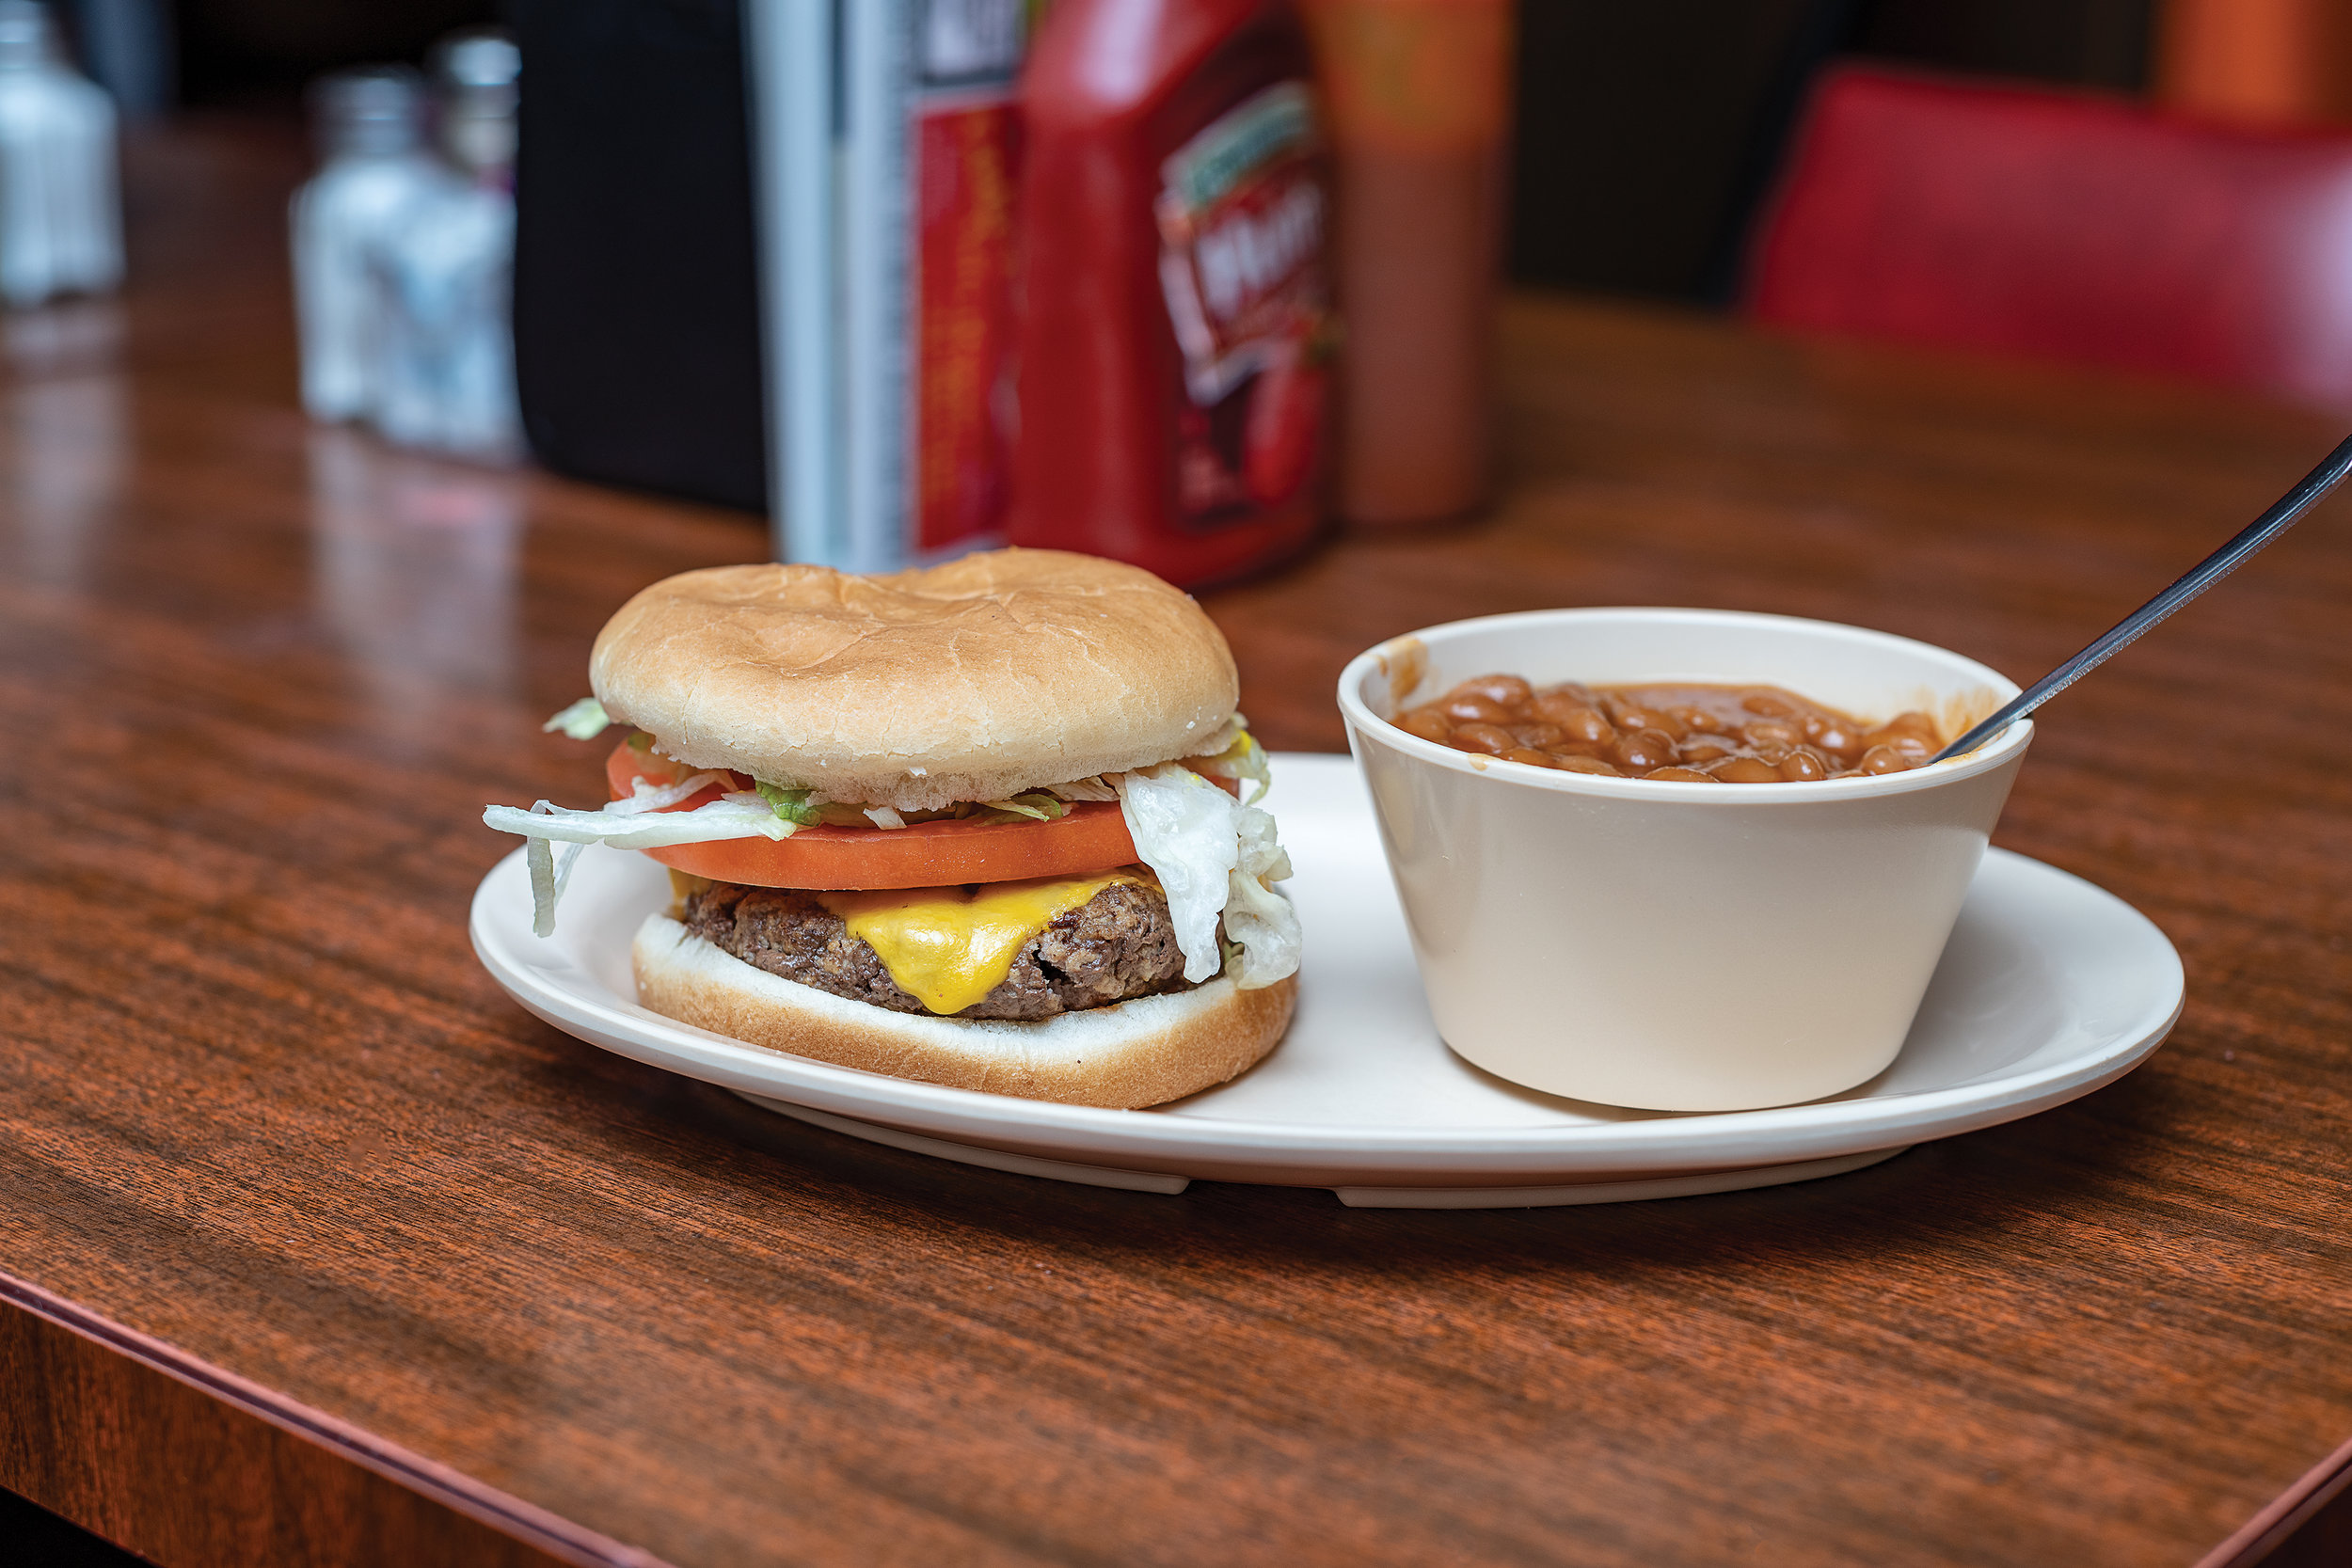 Single cheeseburger with baked beans